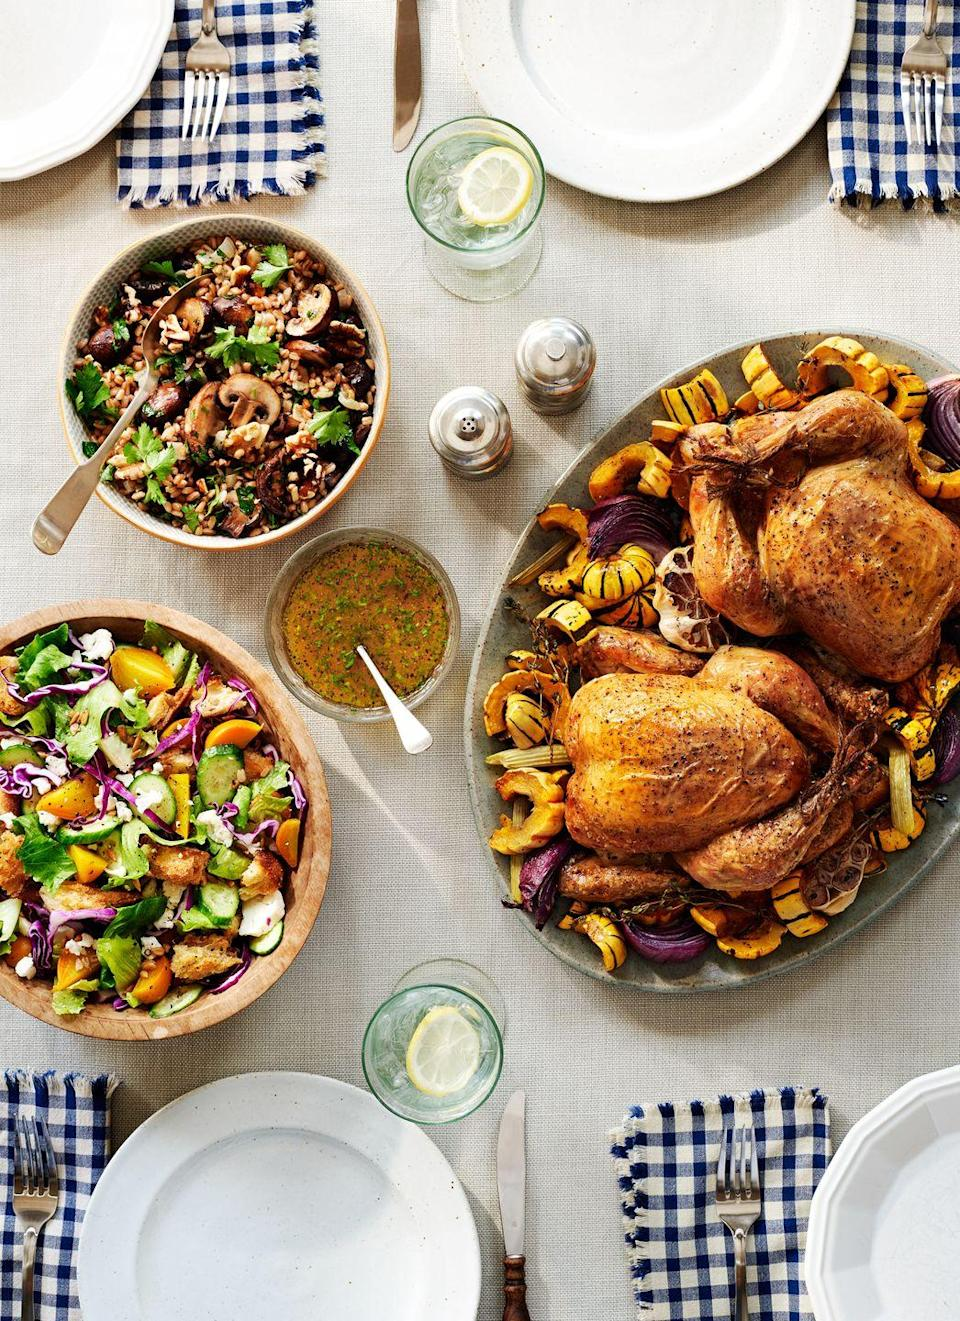 """<p>As each weekend comes to an end, gather your brood around the table for a relaxed, gear-up-for-Monday meal. While certainly company-worthy, this roast chicken won't ruffle your feathers. (It's your weekend too!)</p><p><strong><a href=""""https://www.countryliving.com/food-drinks/recipes/a37295/roasted-chicken-and-winter-squash/"""" rel=""""nofollow noopener"""" target=""""_blank"""" data-ylk=""""slk:Get the recipe"""" class=""""link rapid-noclick-resp"""">Get the recipe</a>.</strong></p>"""